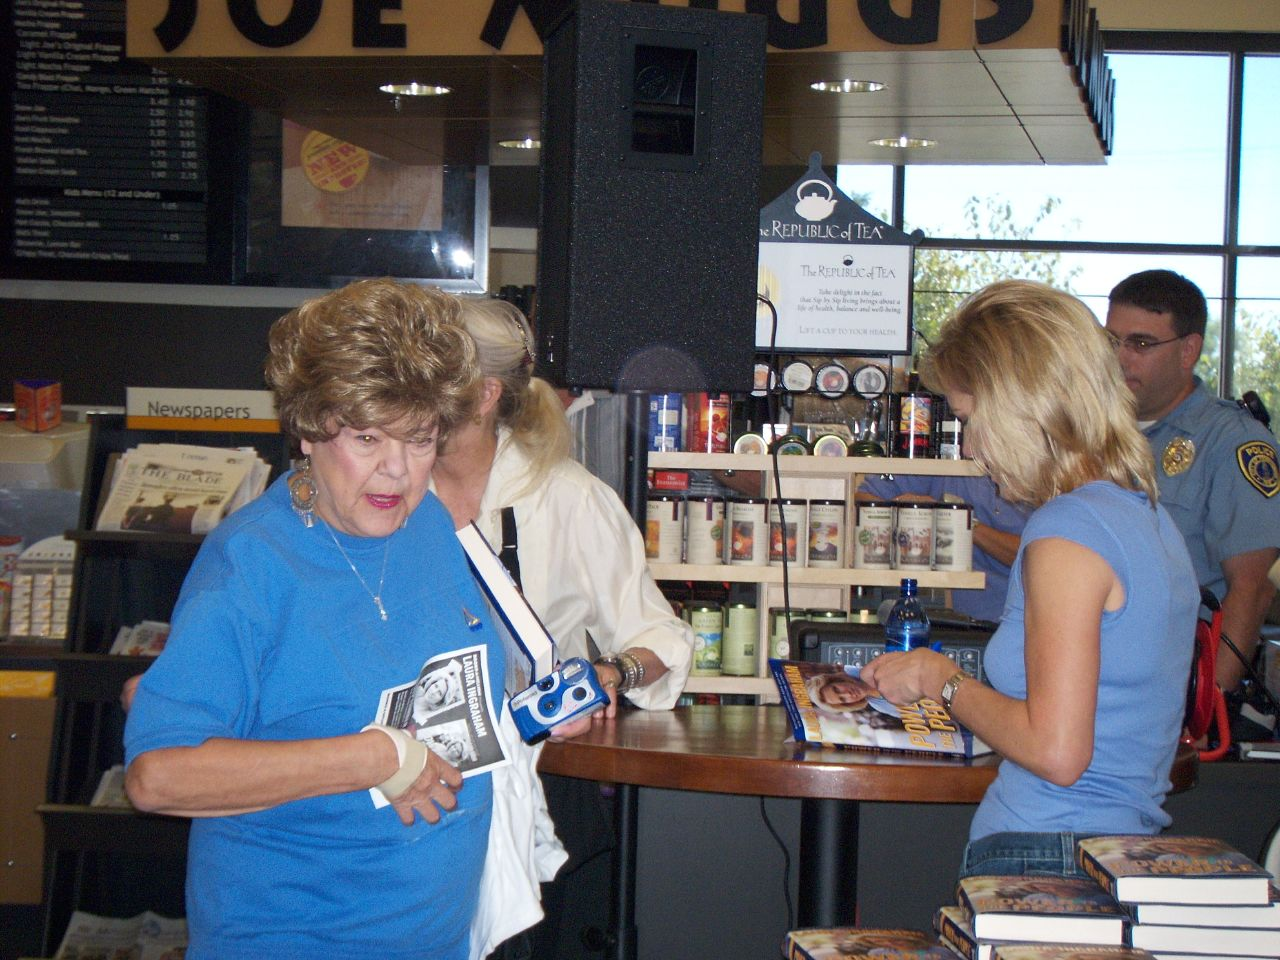 Laura Ingraham signs her new book in Perrysburg Ohio